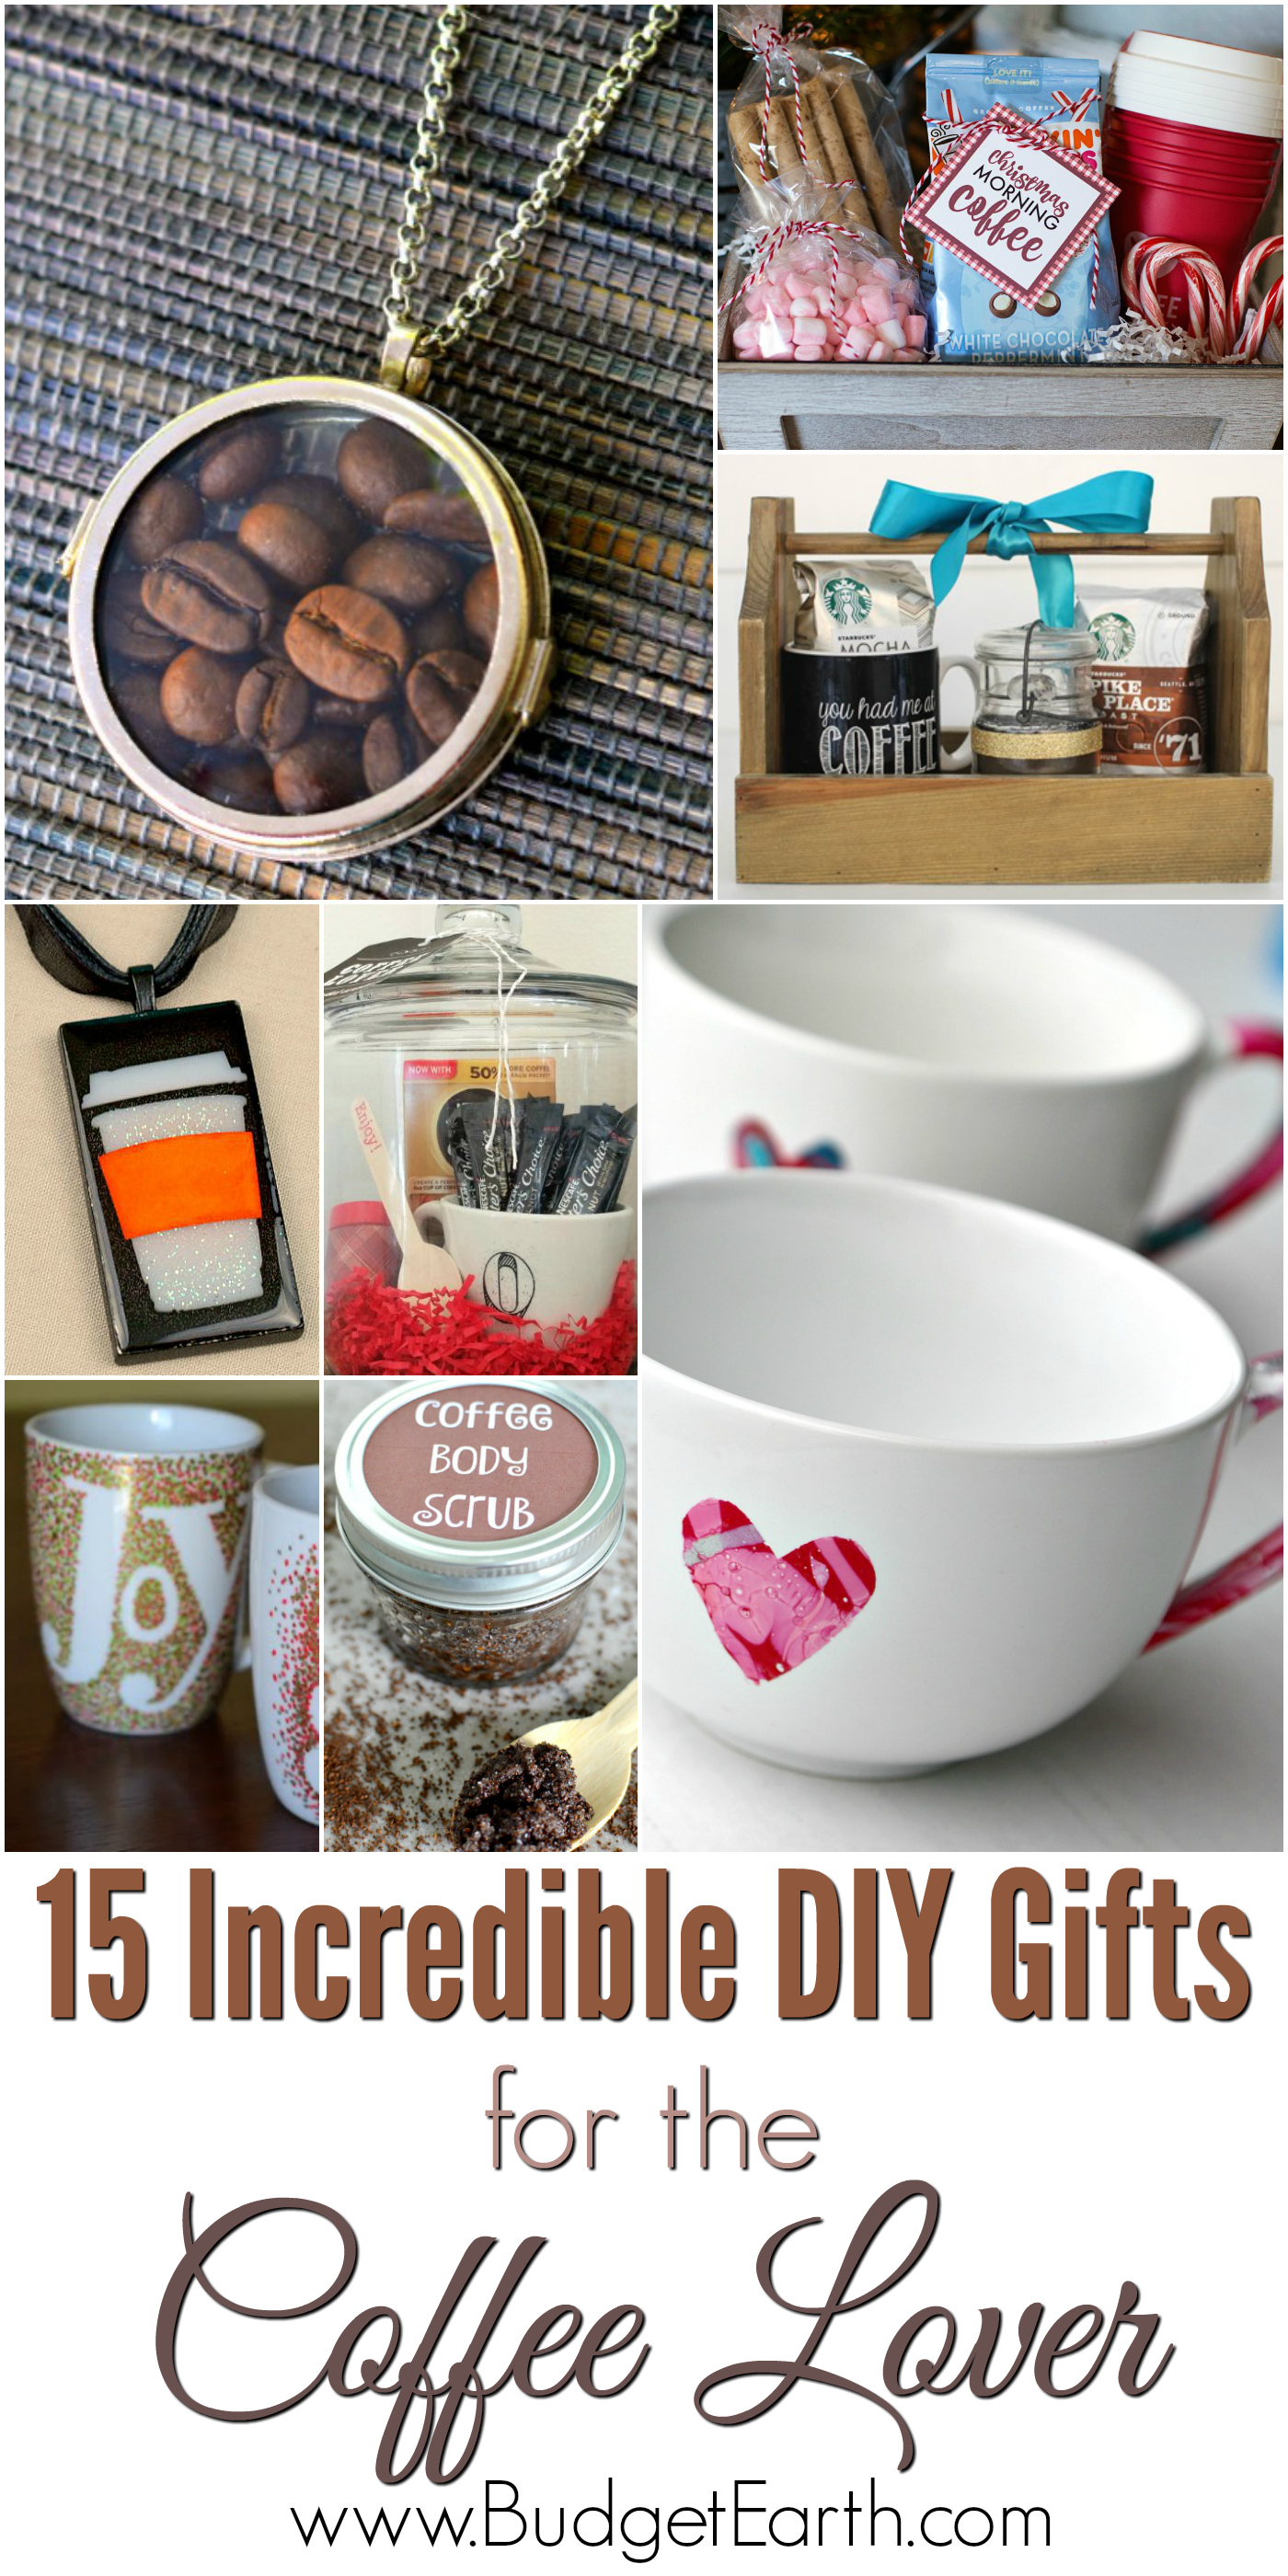 15-incredible-diy-gifts-for-the-coffee-lover